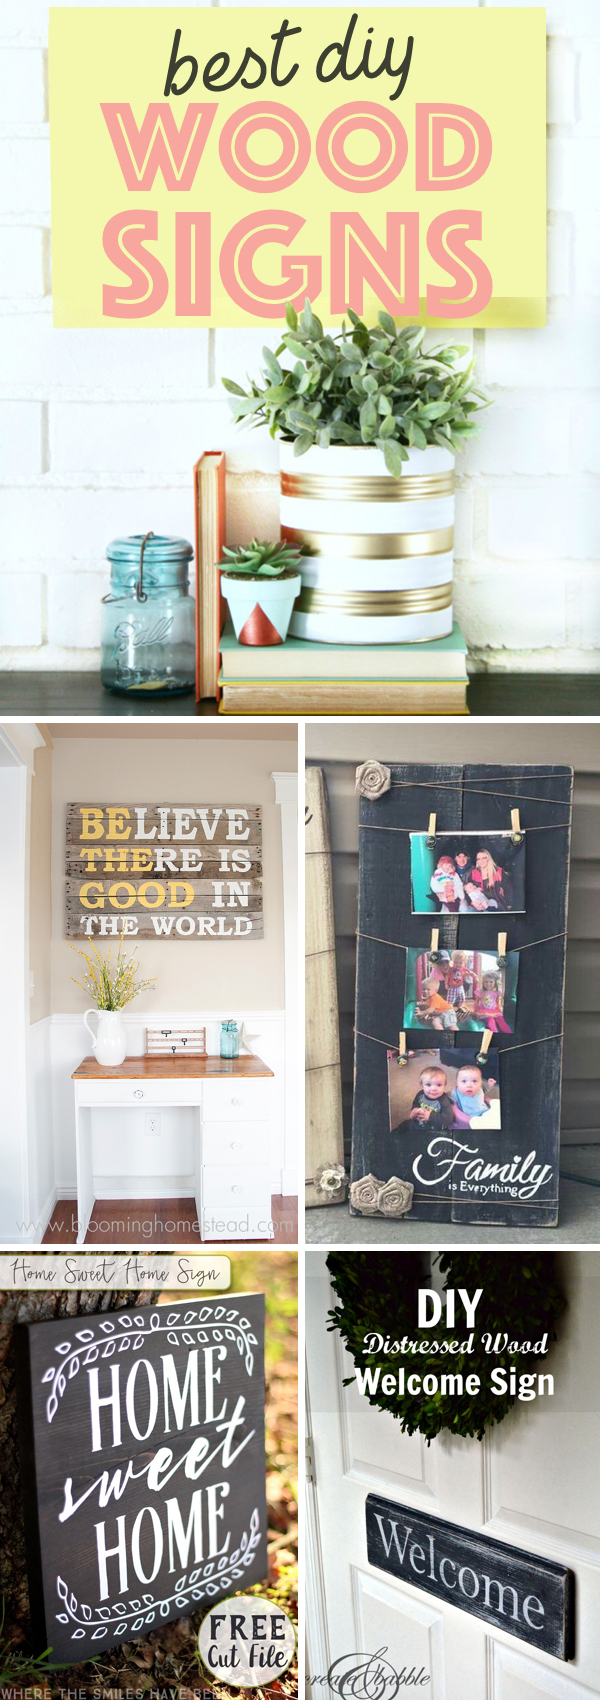 Creative DIY Wood Signs